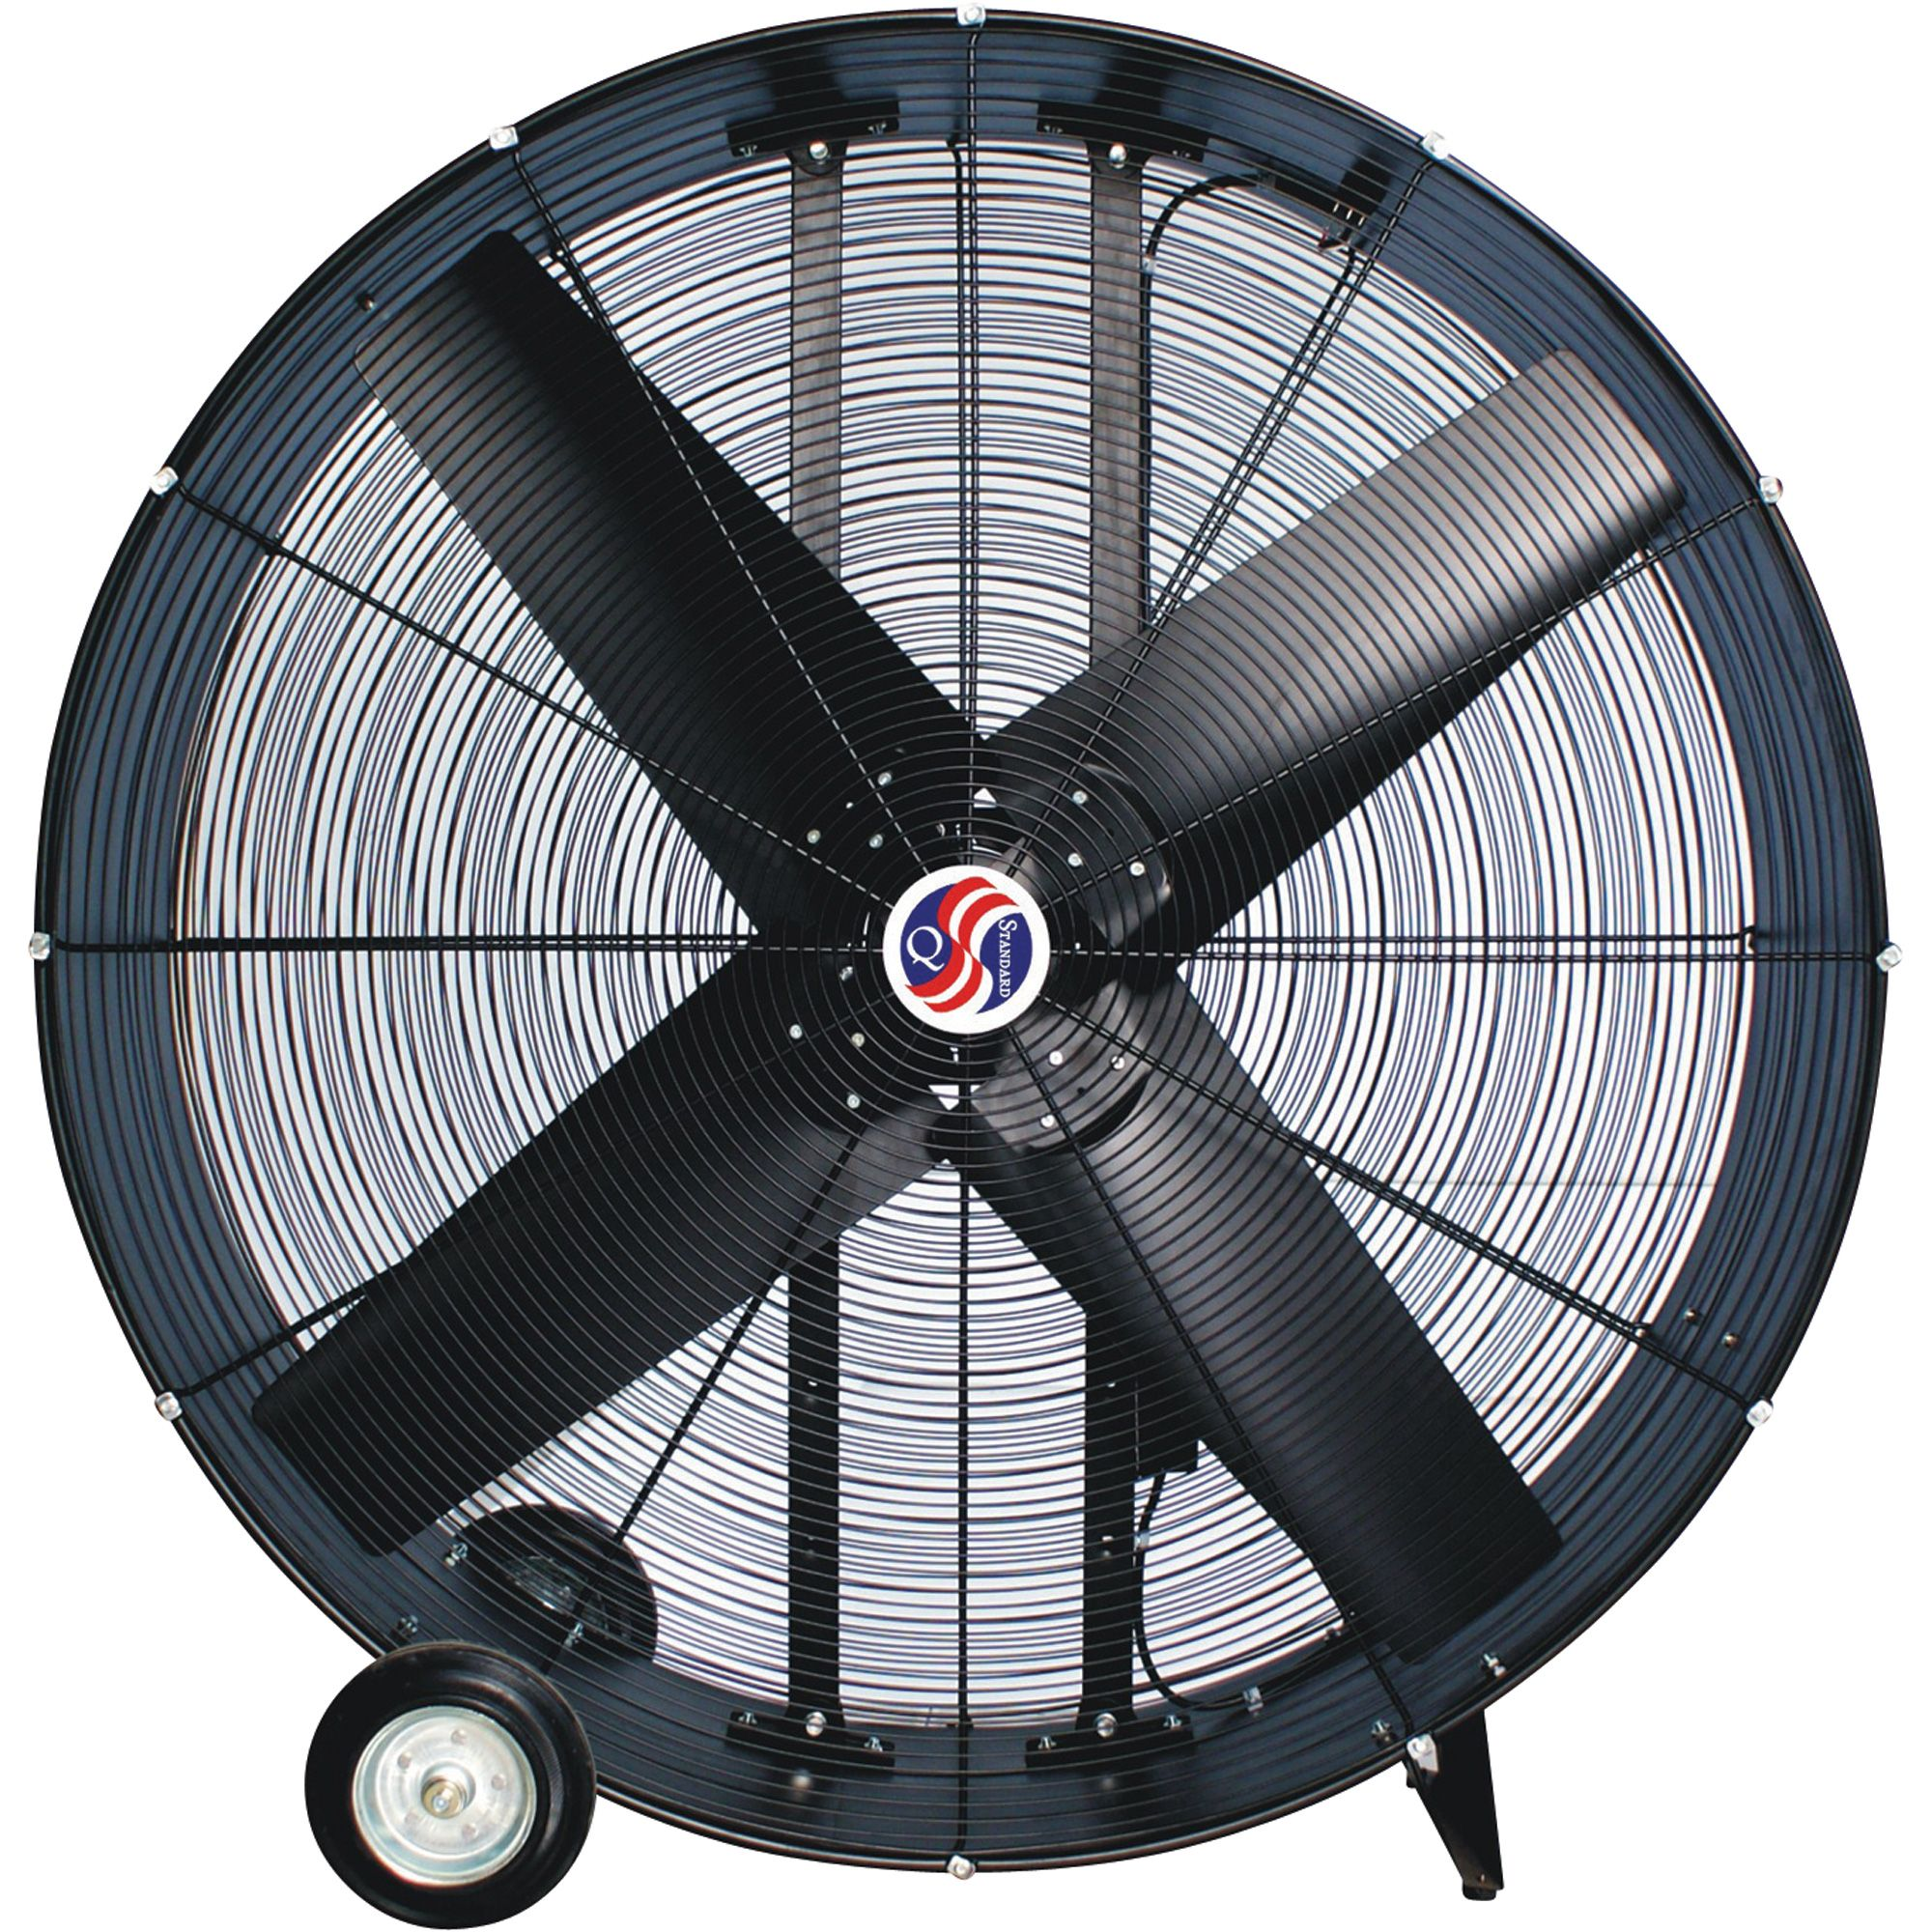 Product: Please See Replacement Item# Q Standard Industrial Direct Drive  Drum Fan U2014 CFM, 1 HP, Model# 10948